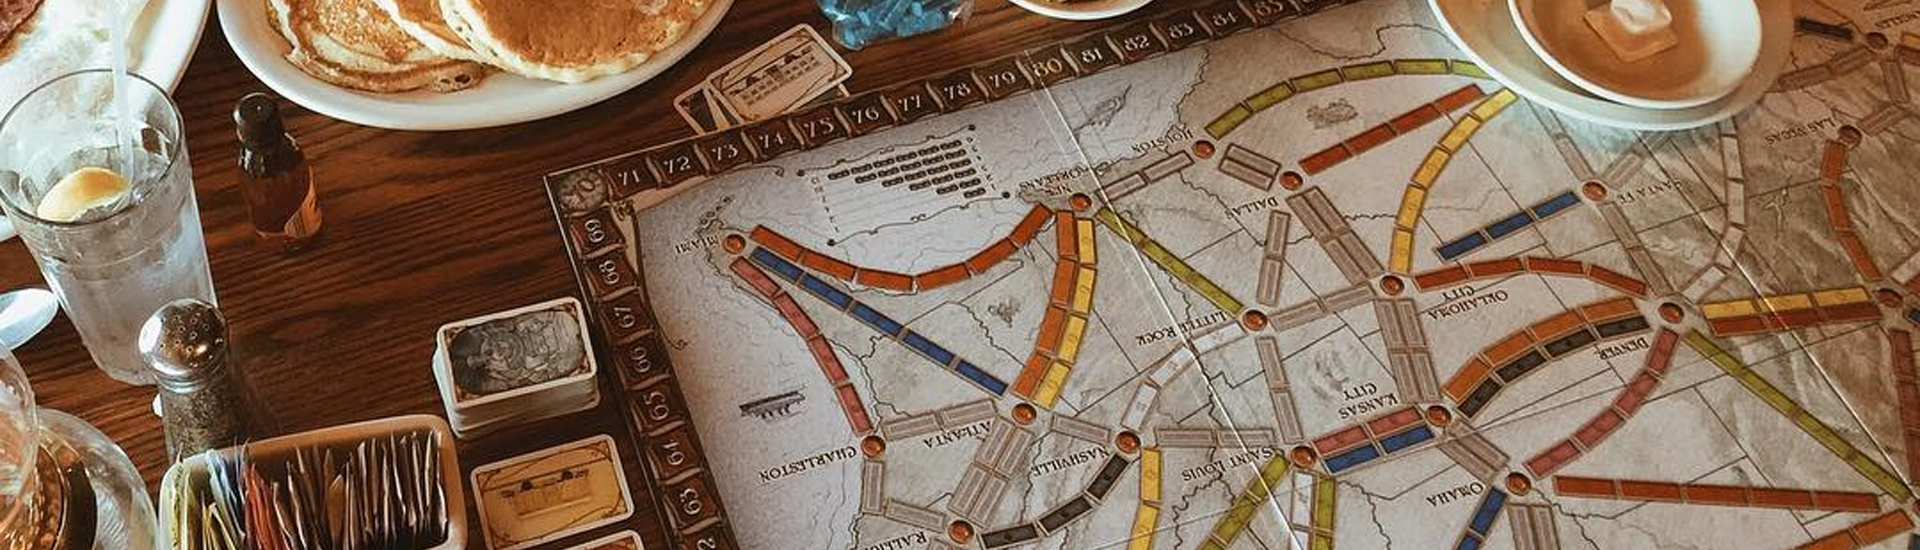 Best Board Games for College Students